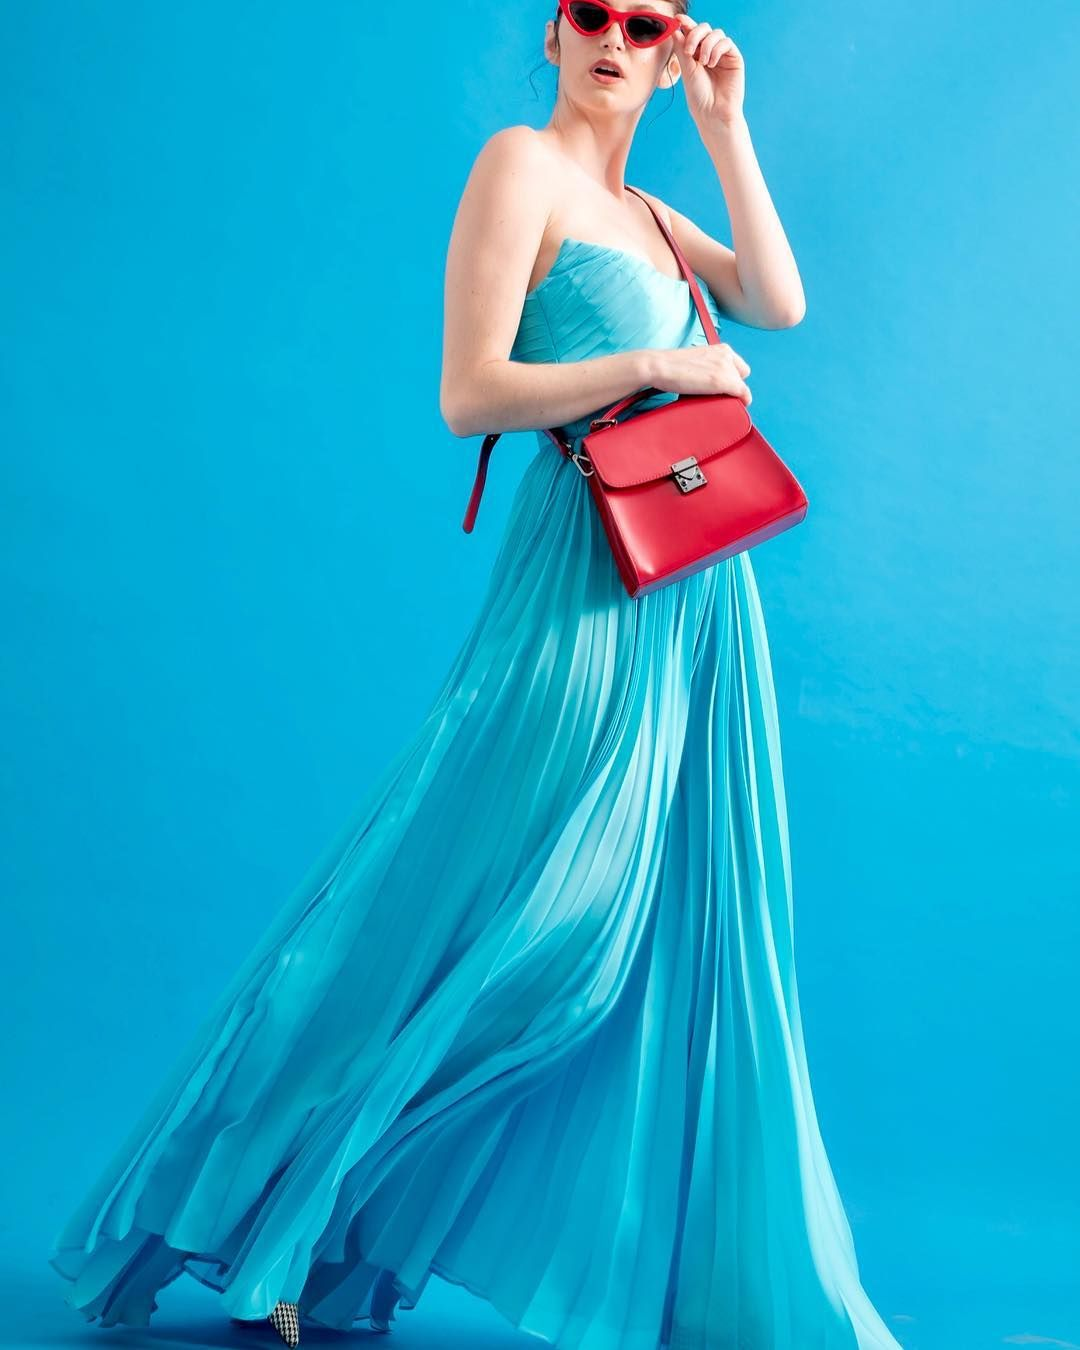 The Pleated Prom Dress Easy Yet Bold Inspired By The 80s Craze For